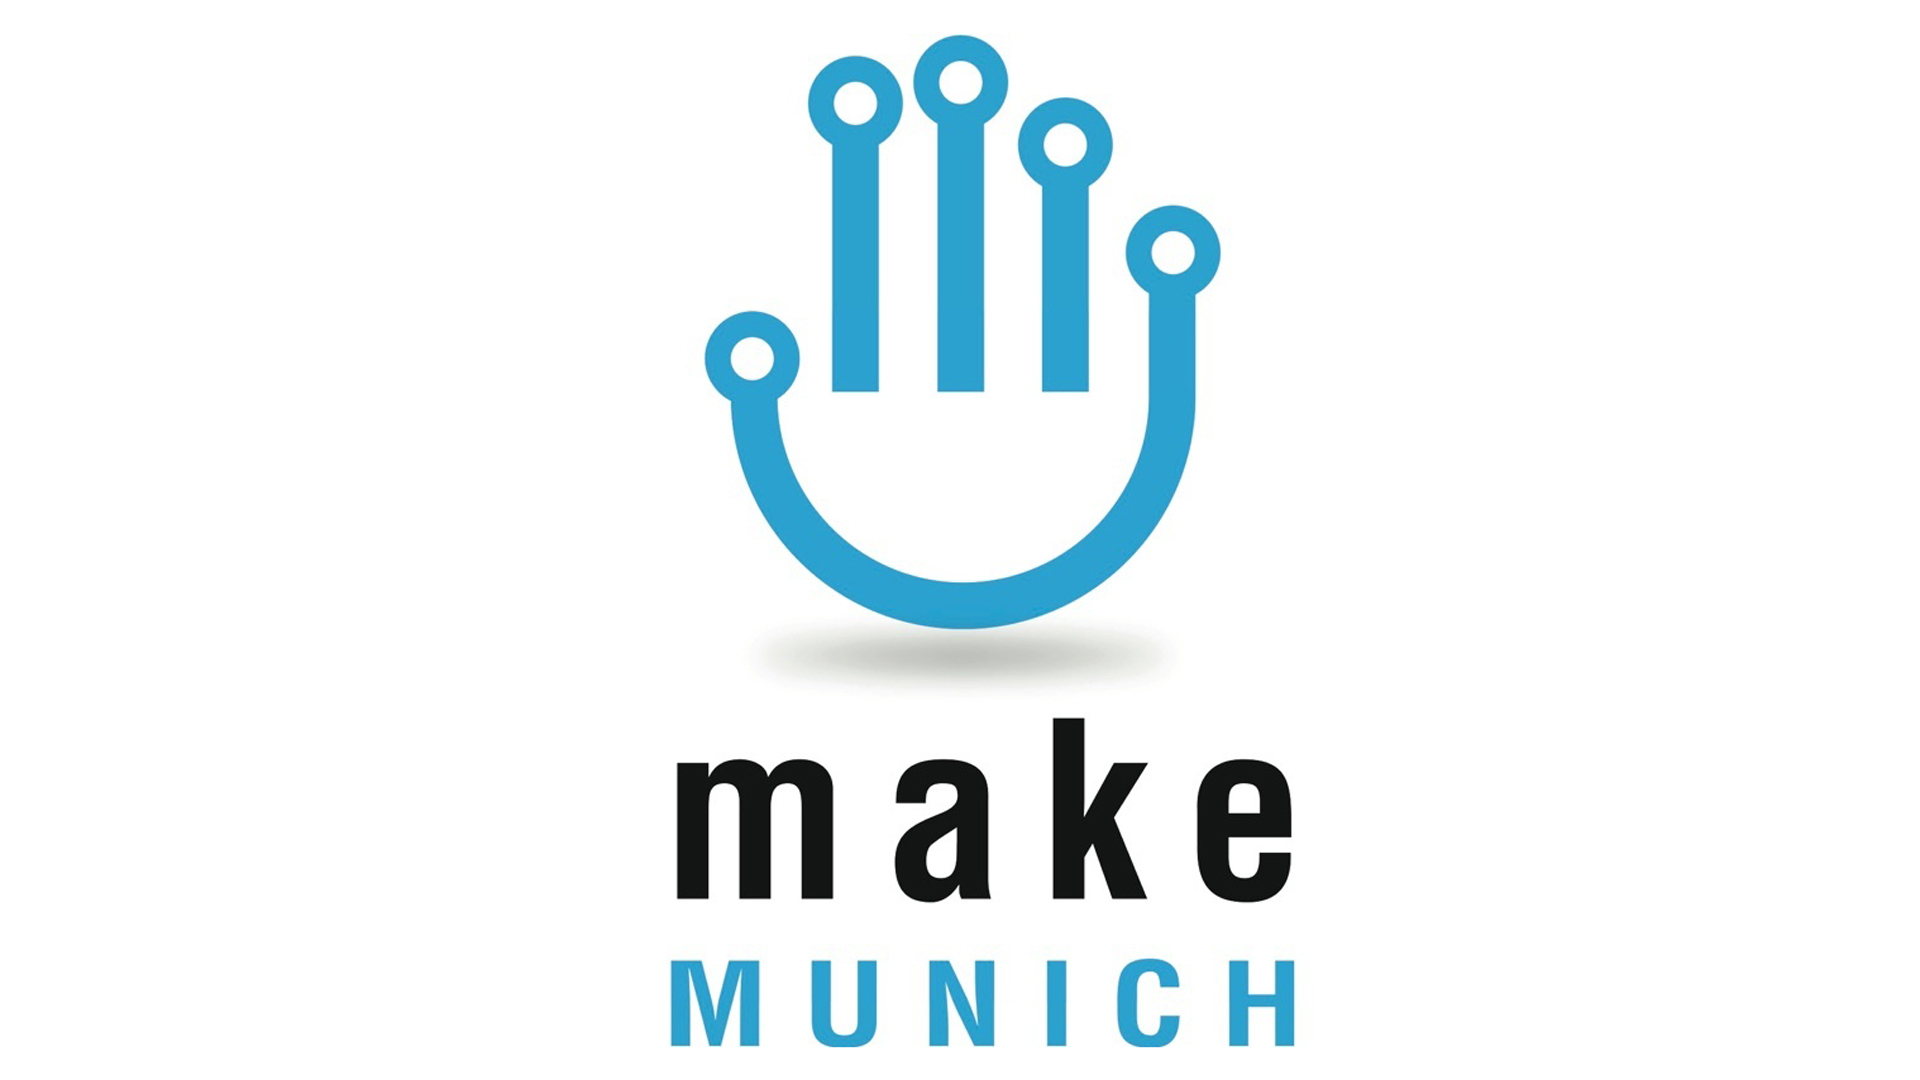 Make_munich_logo-pfade.jpg